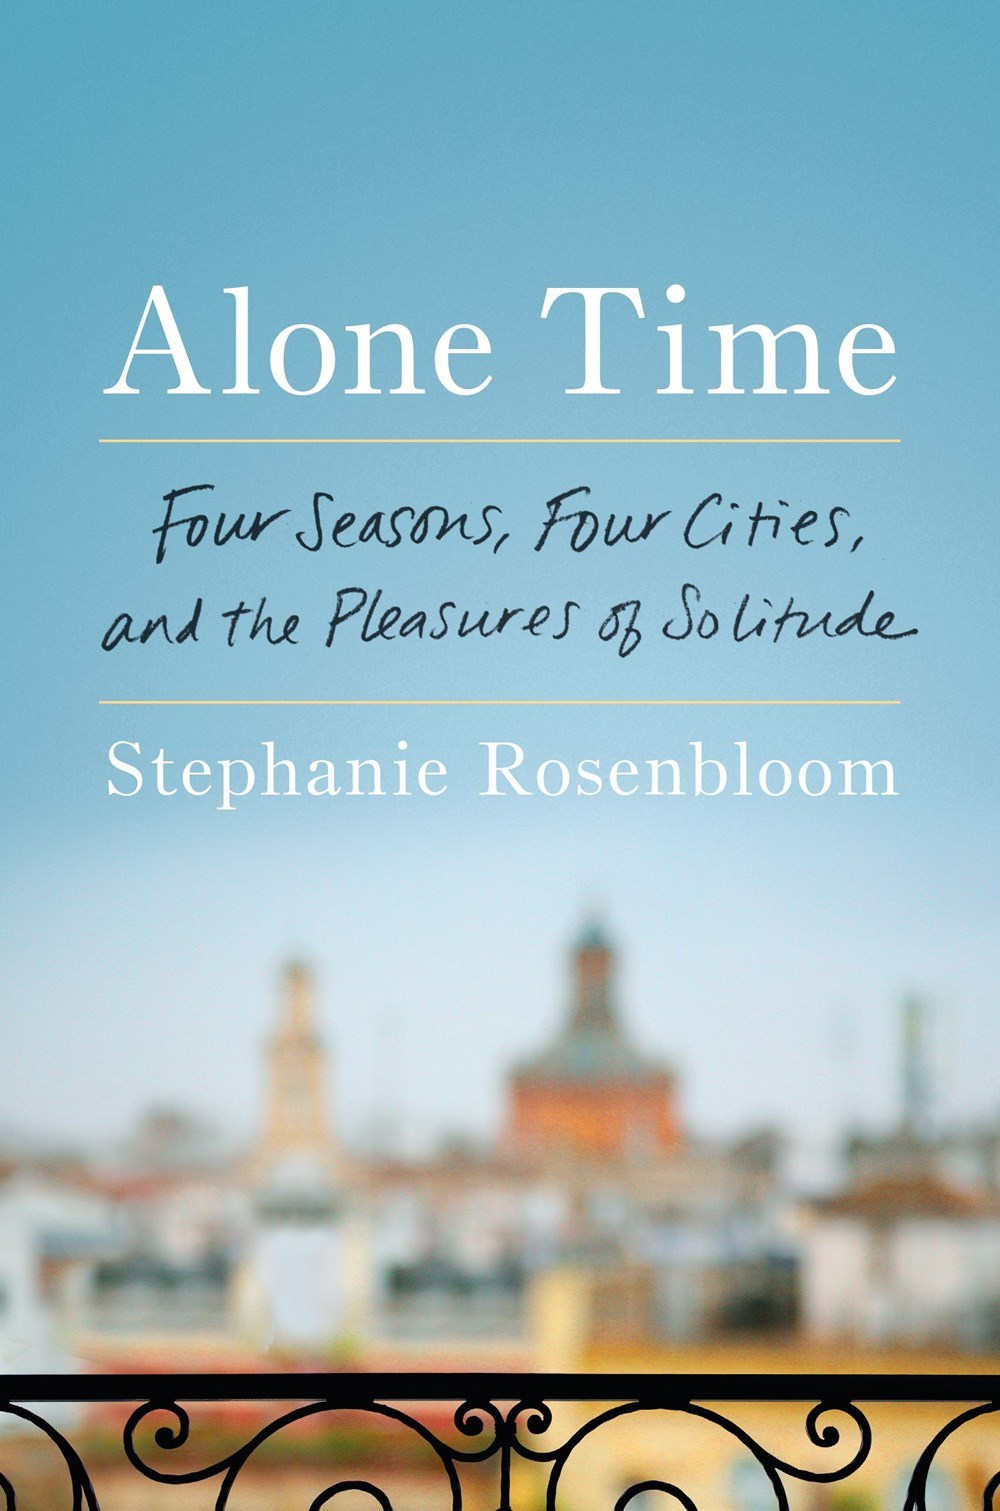 Alone Time Four Seasons, Four Cities, and the Pleasures of Solitude